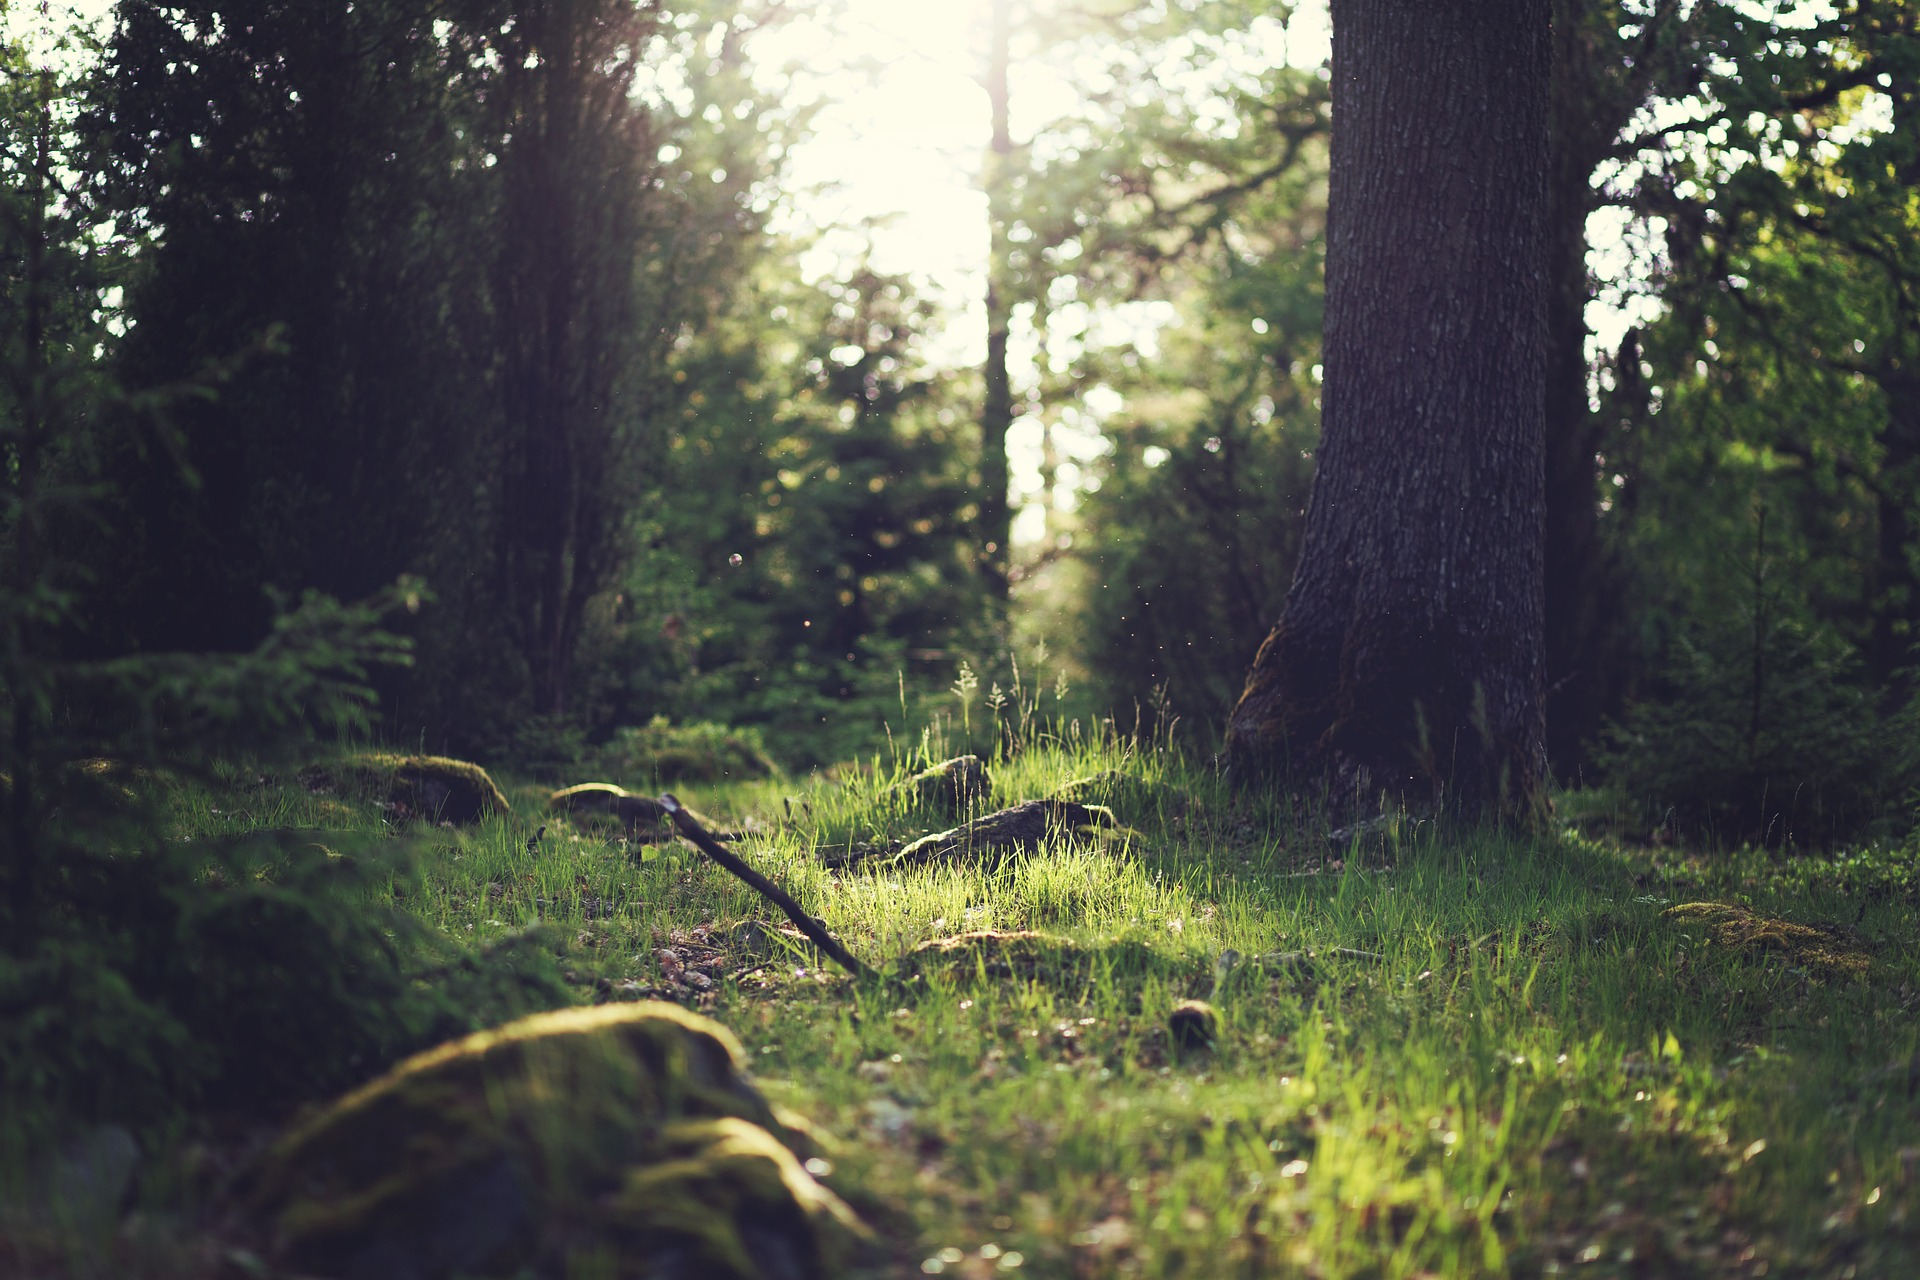 forest-653448_1920